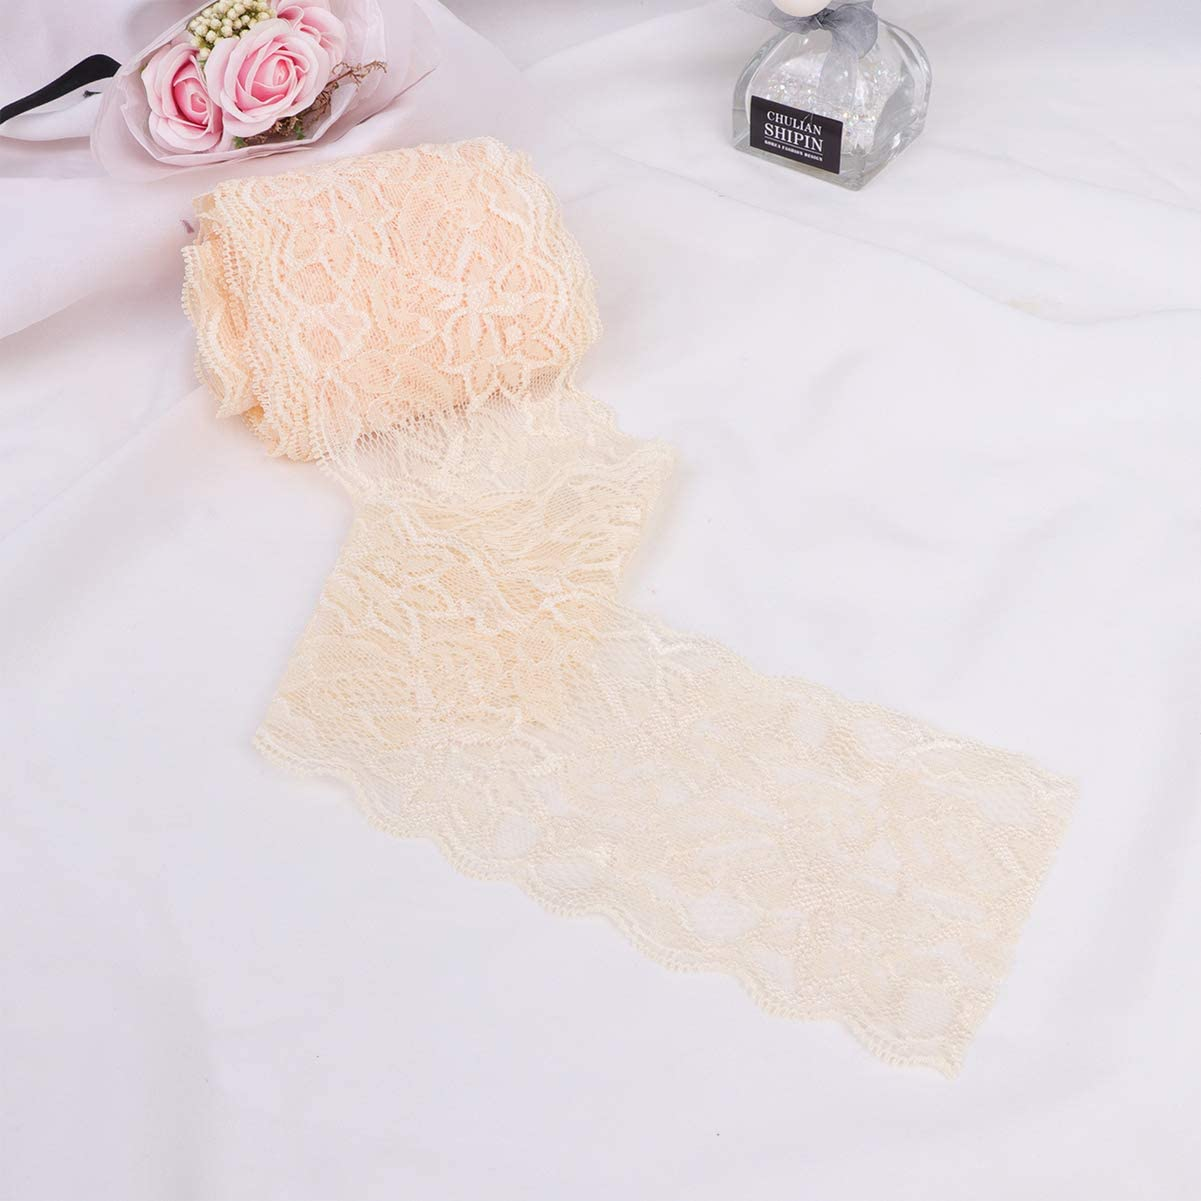 Healifty 1 Roll Lace Ribbon Elastic Lace Trim Lace Craft Ribbon Gift Packing Ribbon DIY Material White